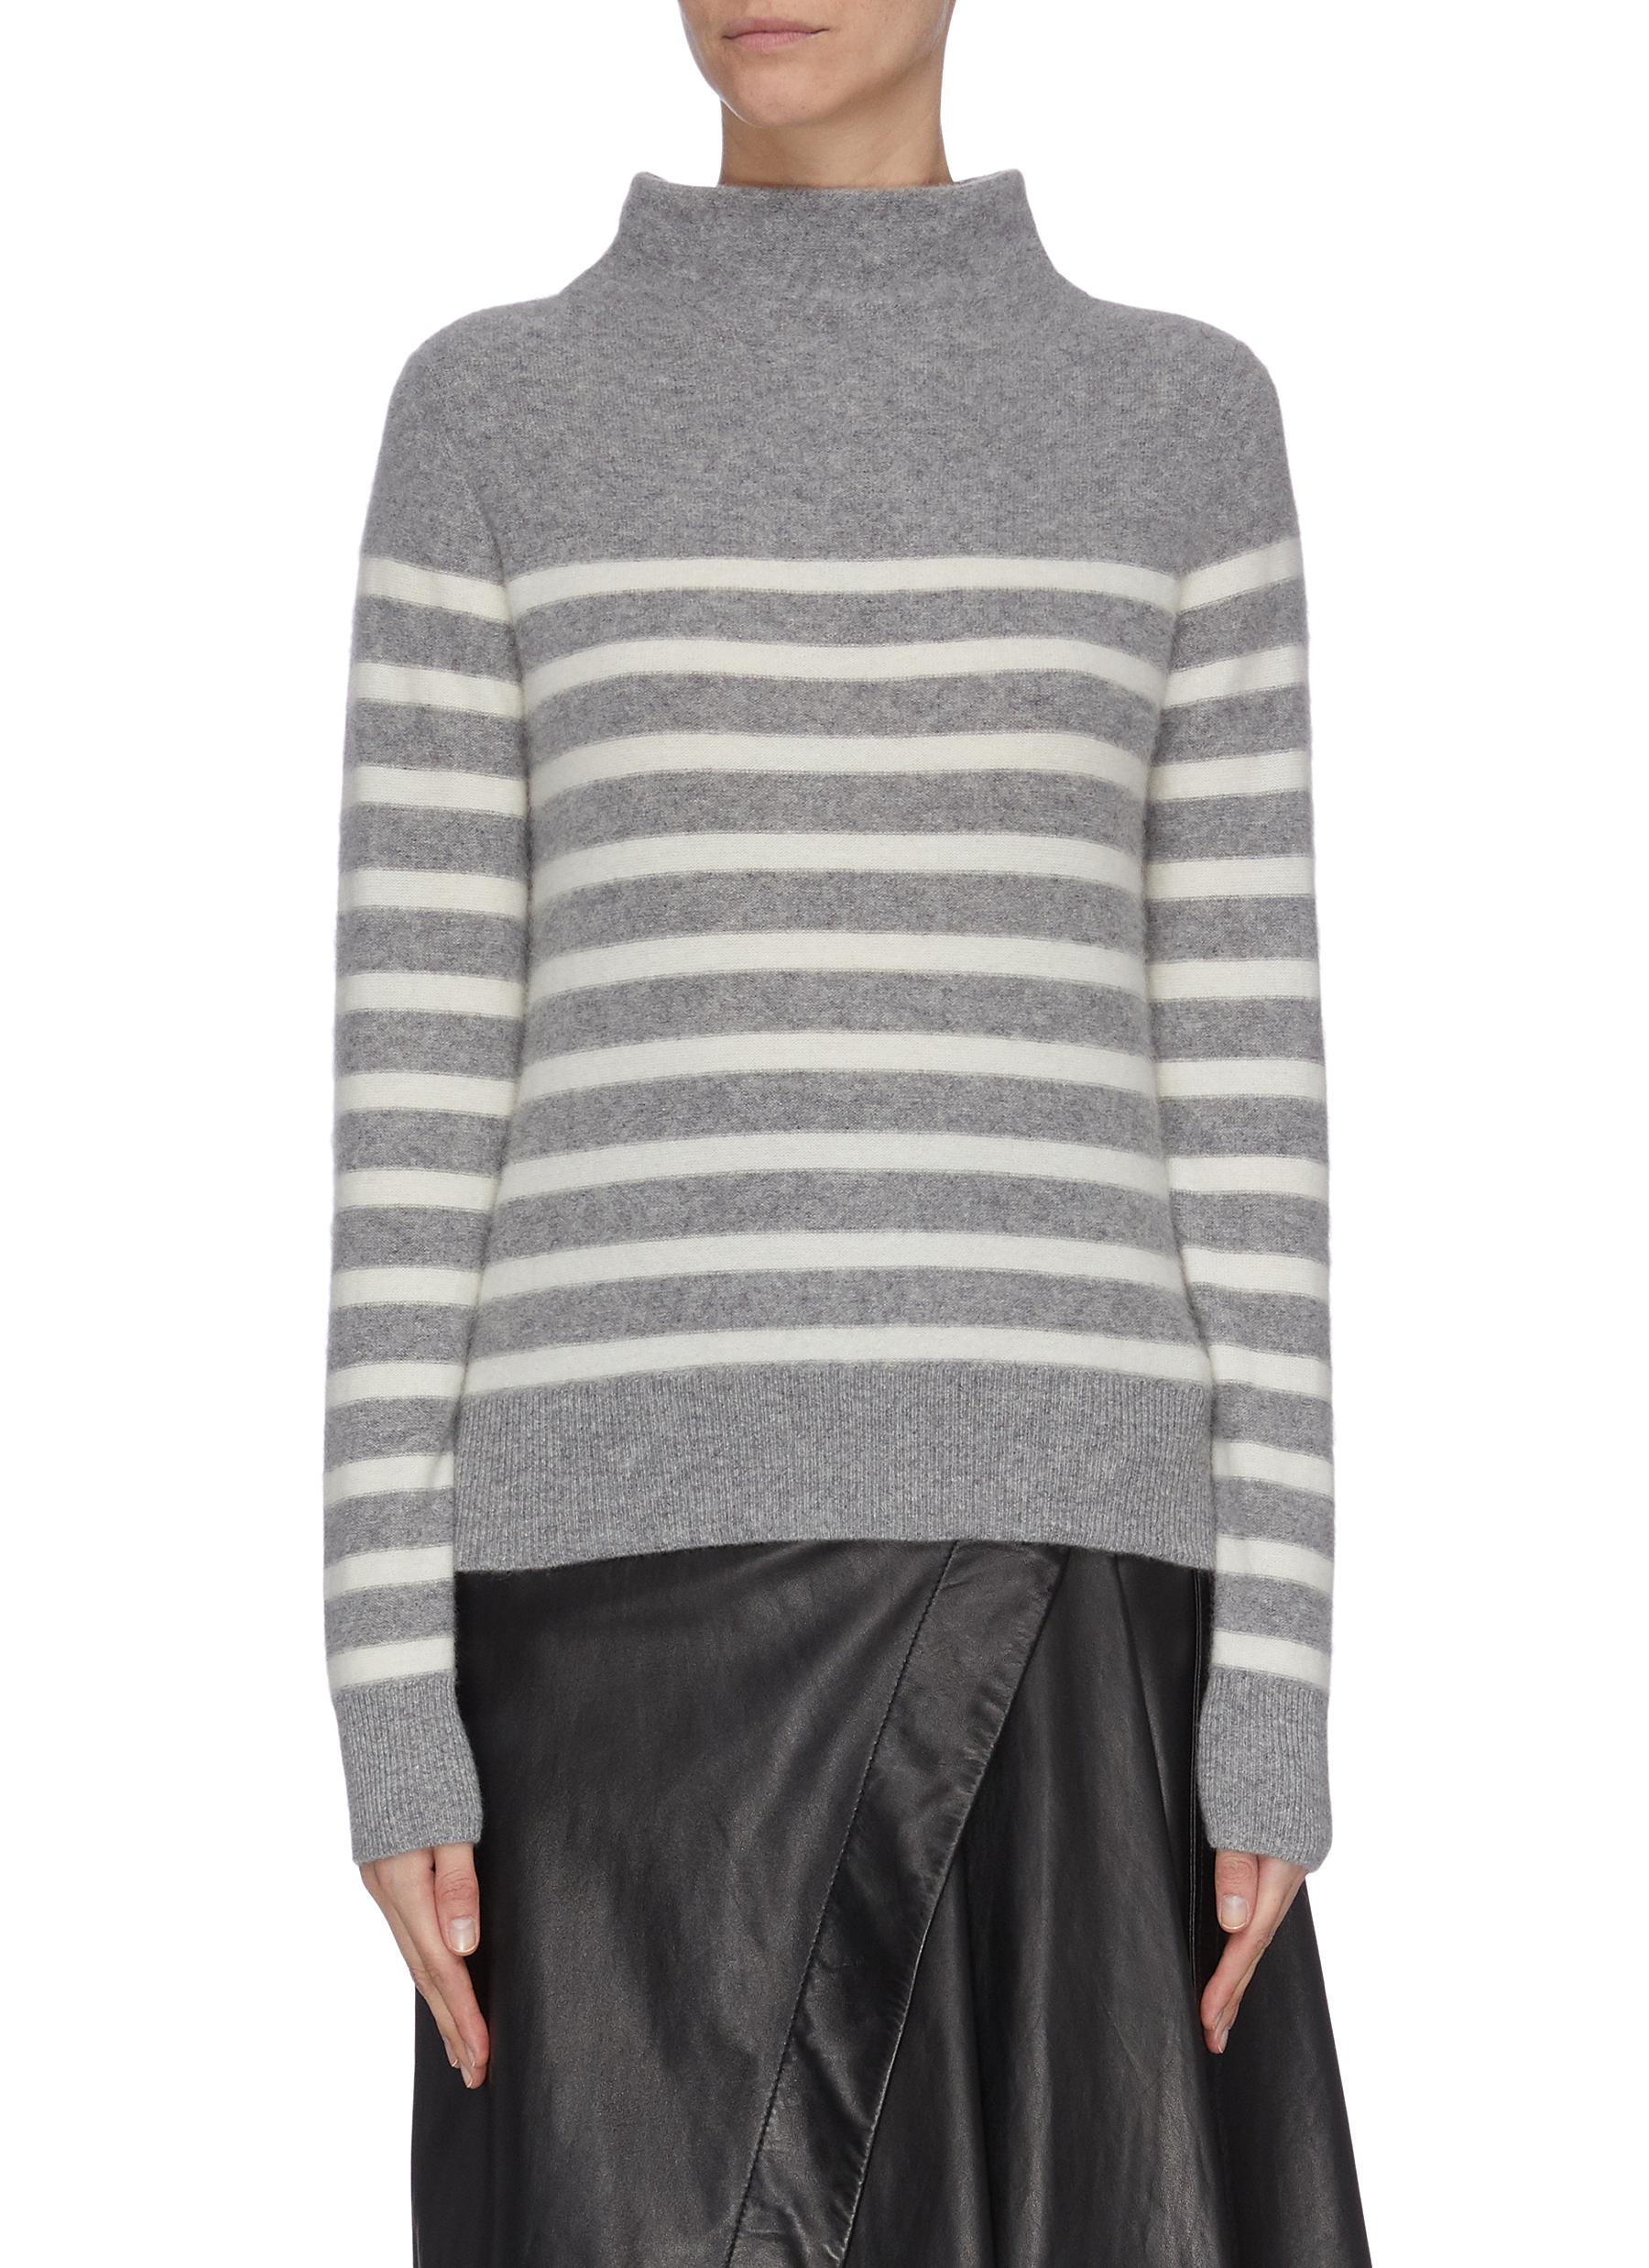 Buy Vince Knitwear 'Brenton' stripe cashmere turtleneck sweater